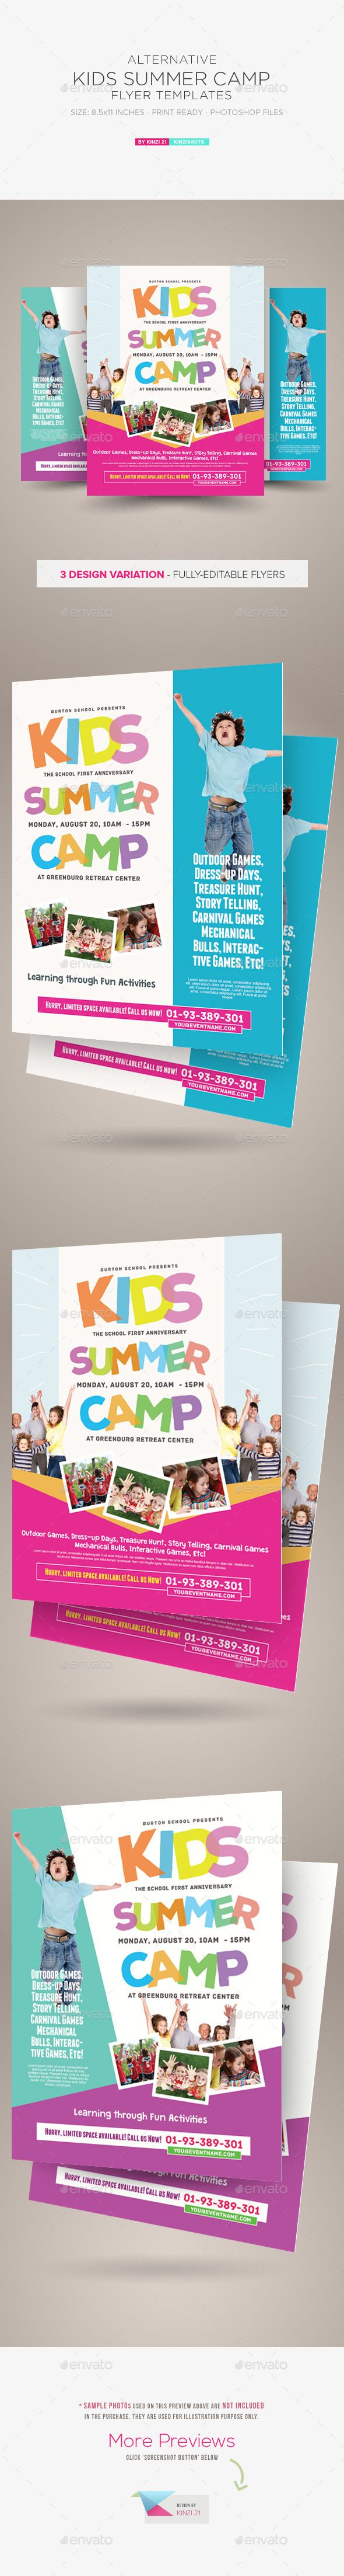 Kids Summer Camp Flyer Templates — Photoshop PSD #competition #kid • Available here → https://graphicriver.net/item/kids-summer-camp-flyer-templates/10476259?ref=pxcr